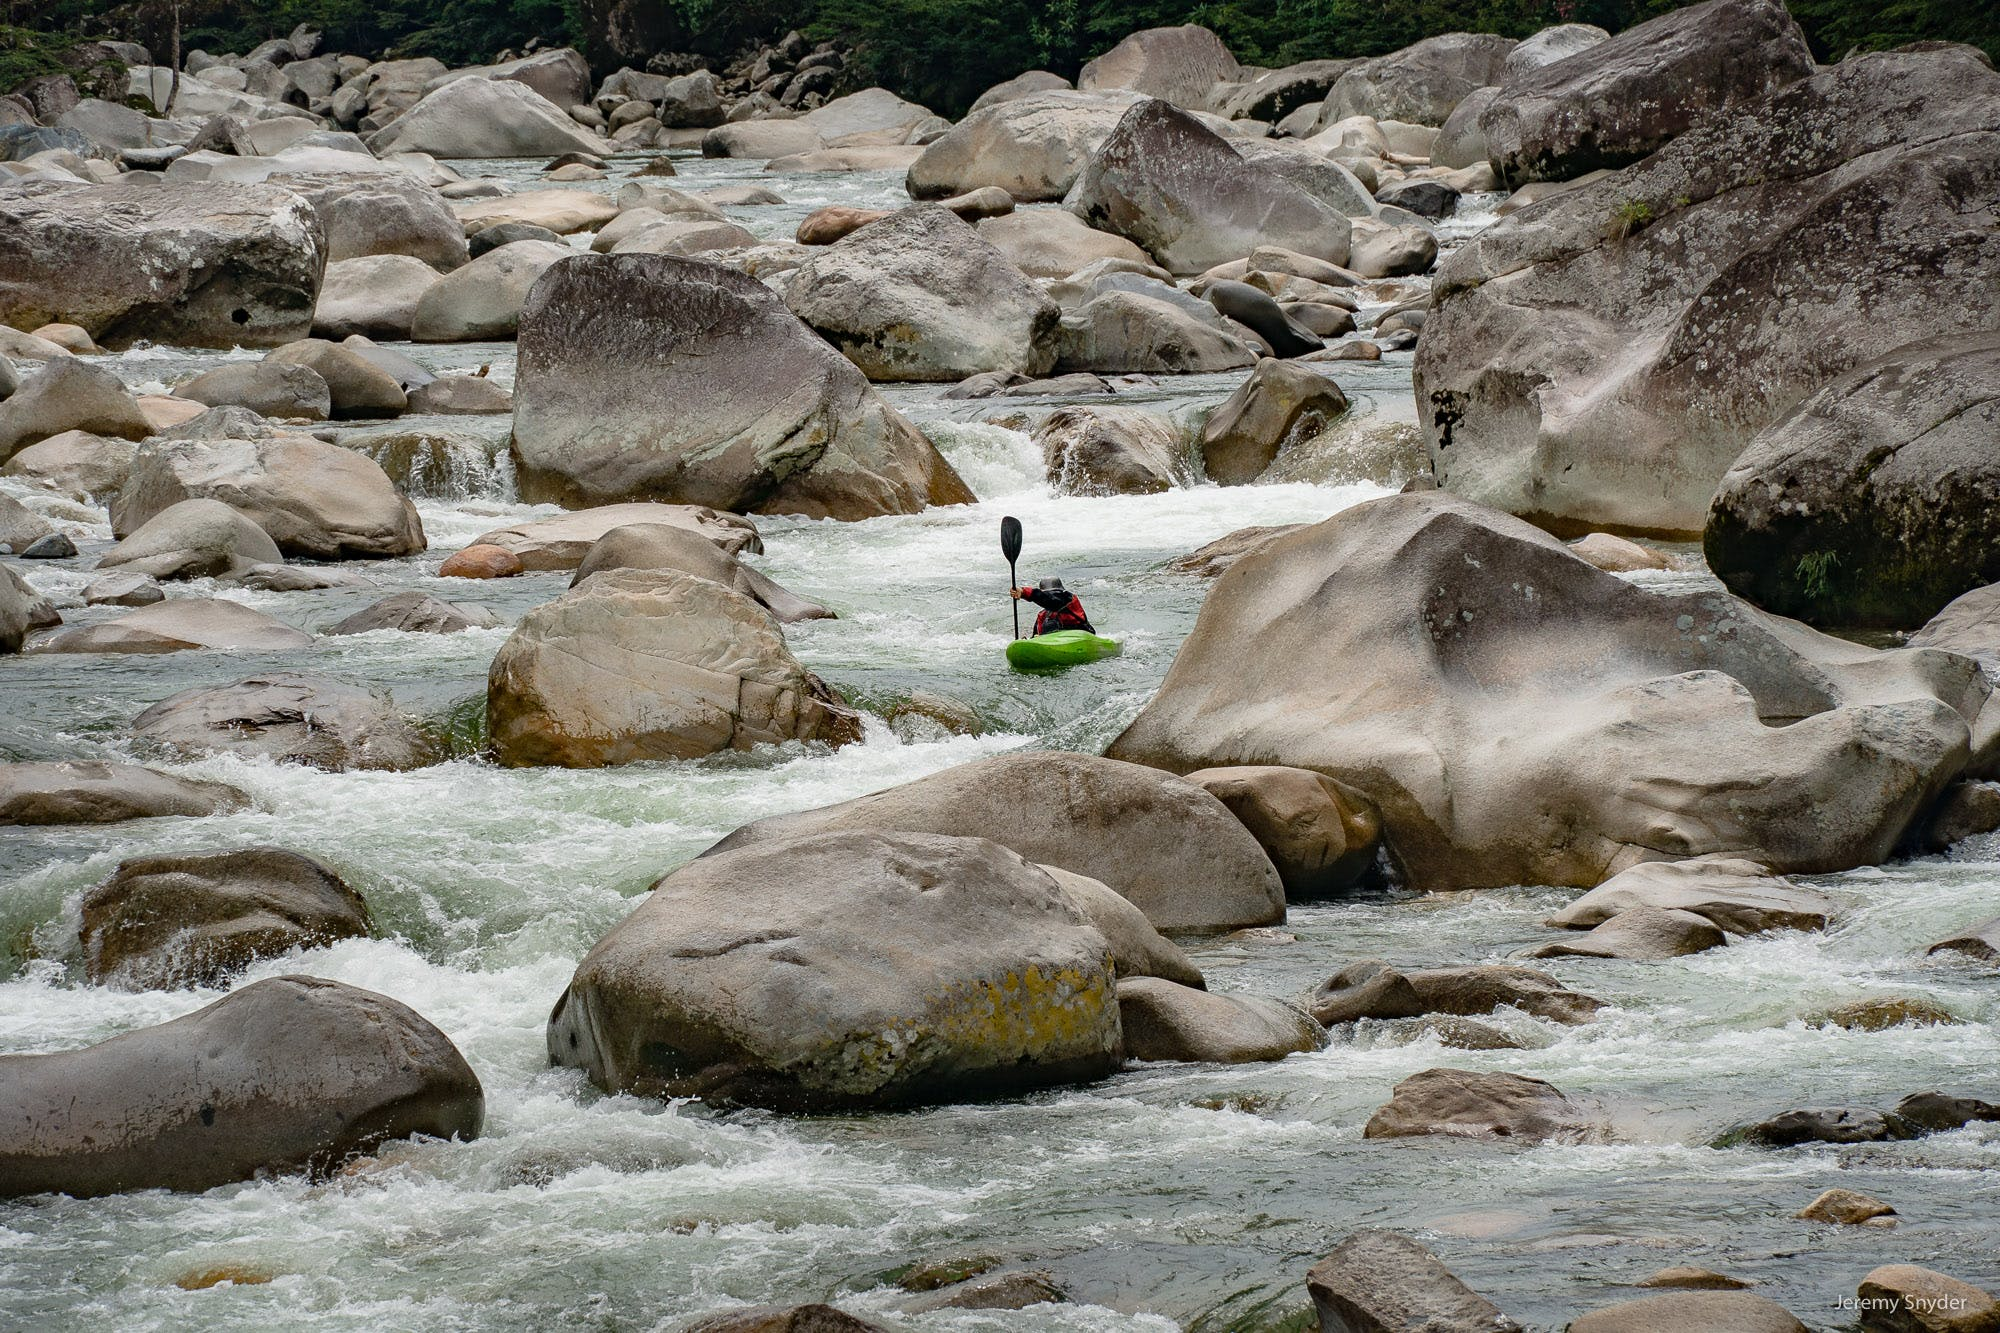 A kayaker paddles the Piatua river in Ecuador, among boulders brought down from the Andes